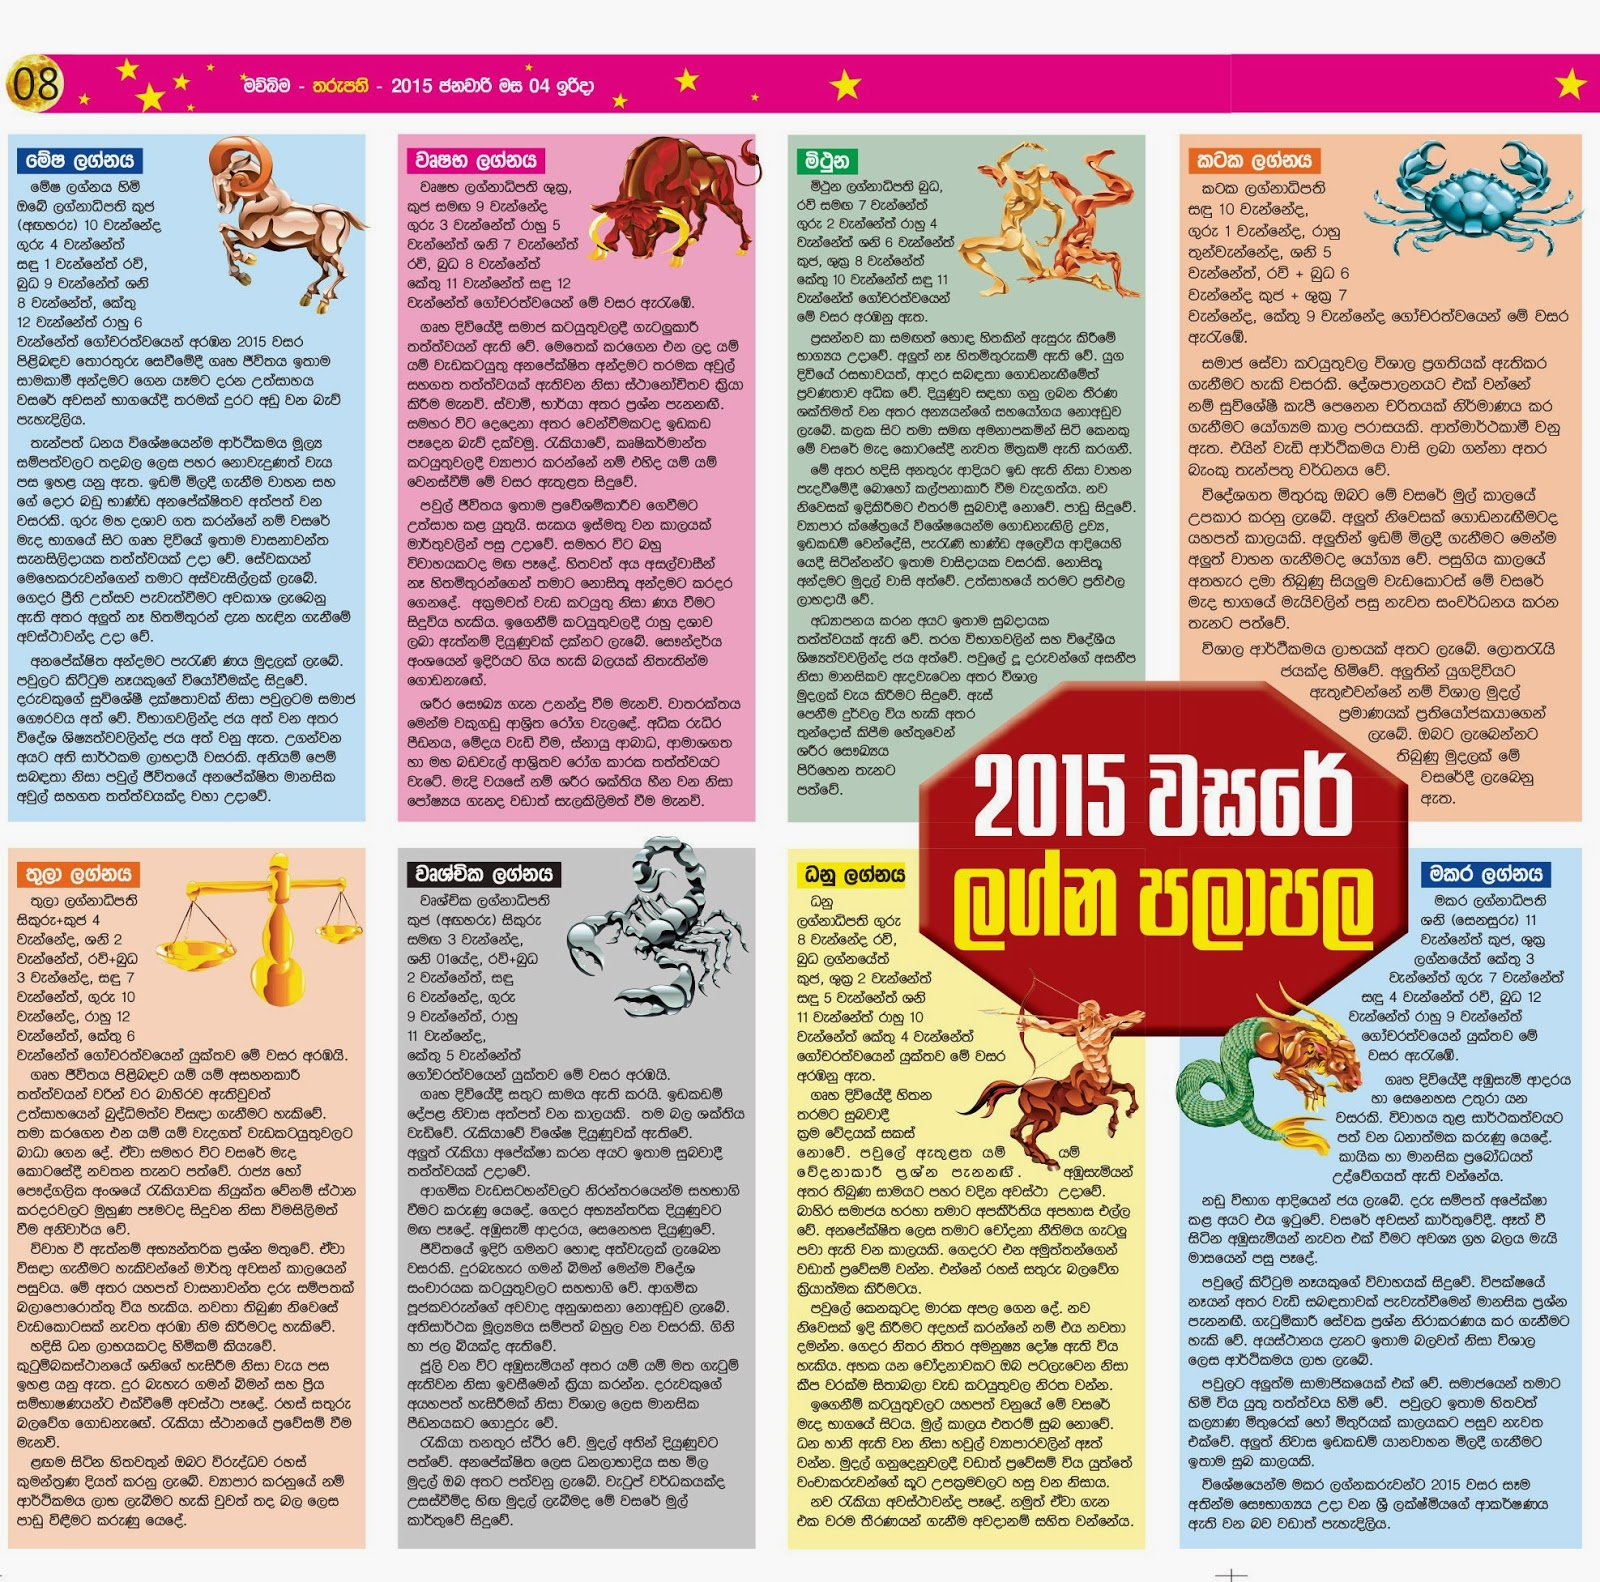 ... 2015 Horoscope Astrology Forecast | Sri Lanka Newspaper Articles